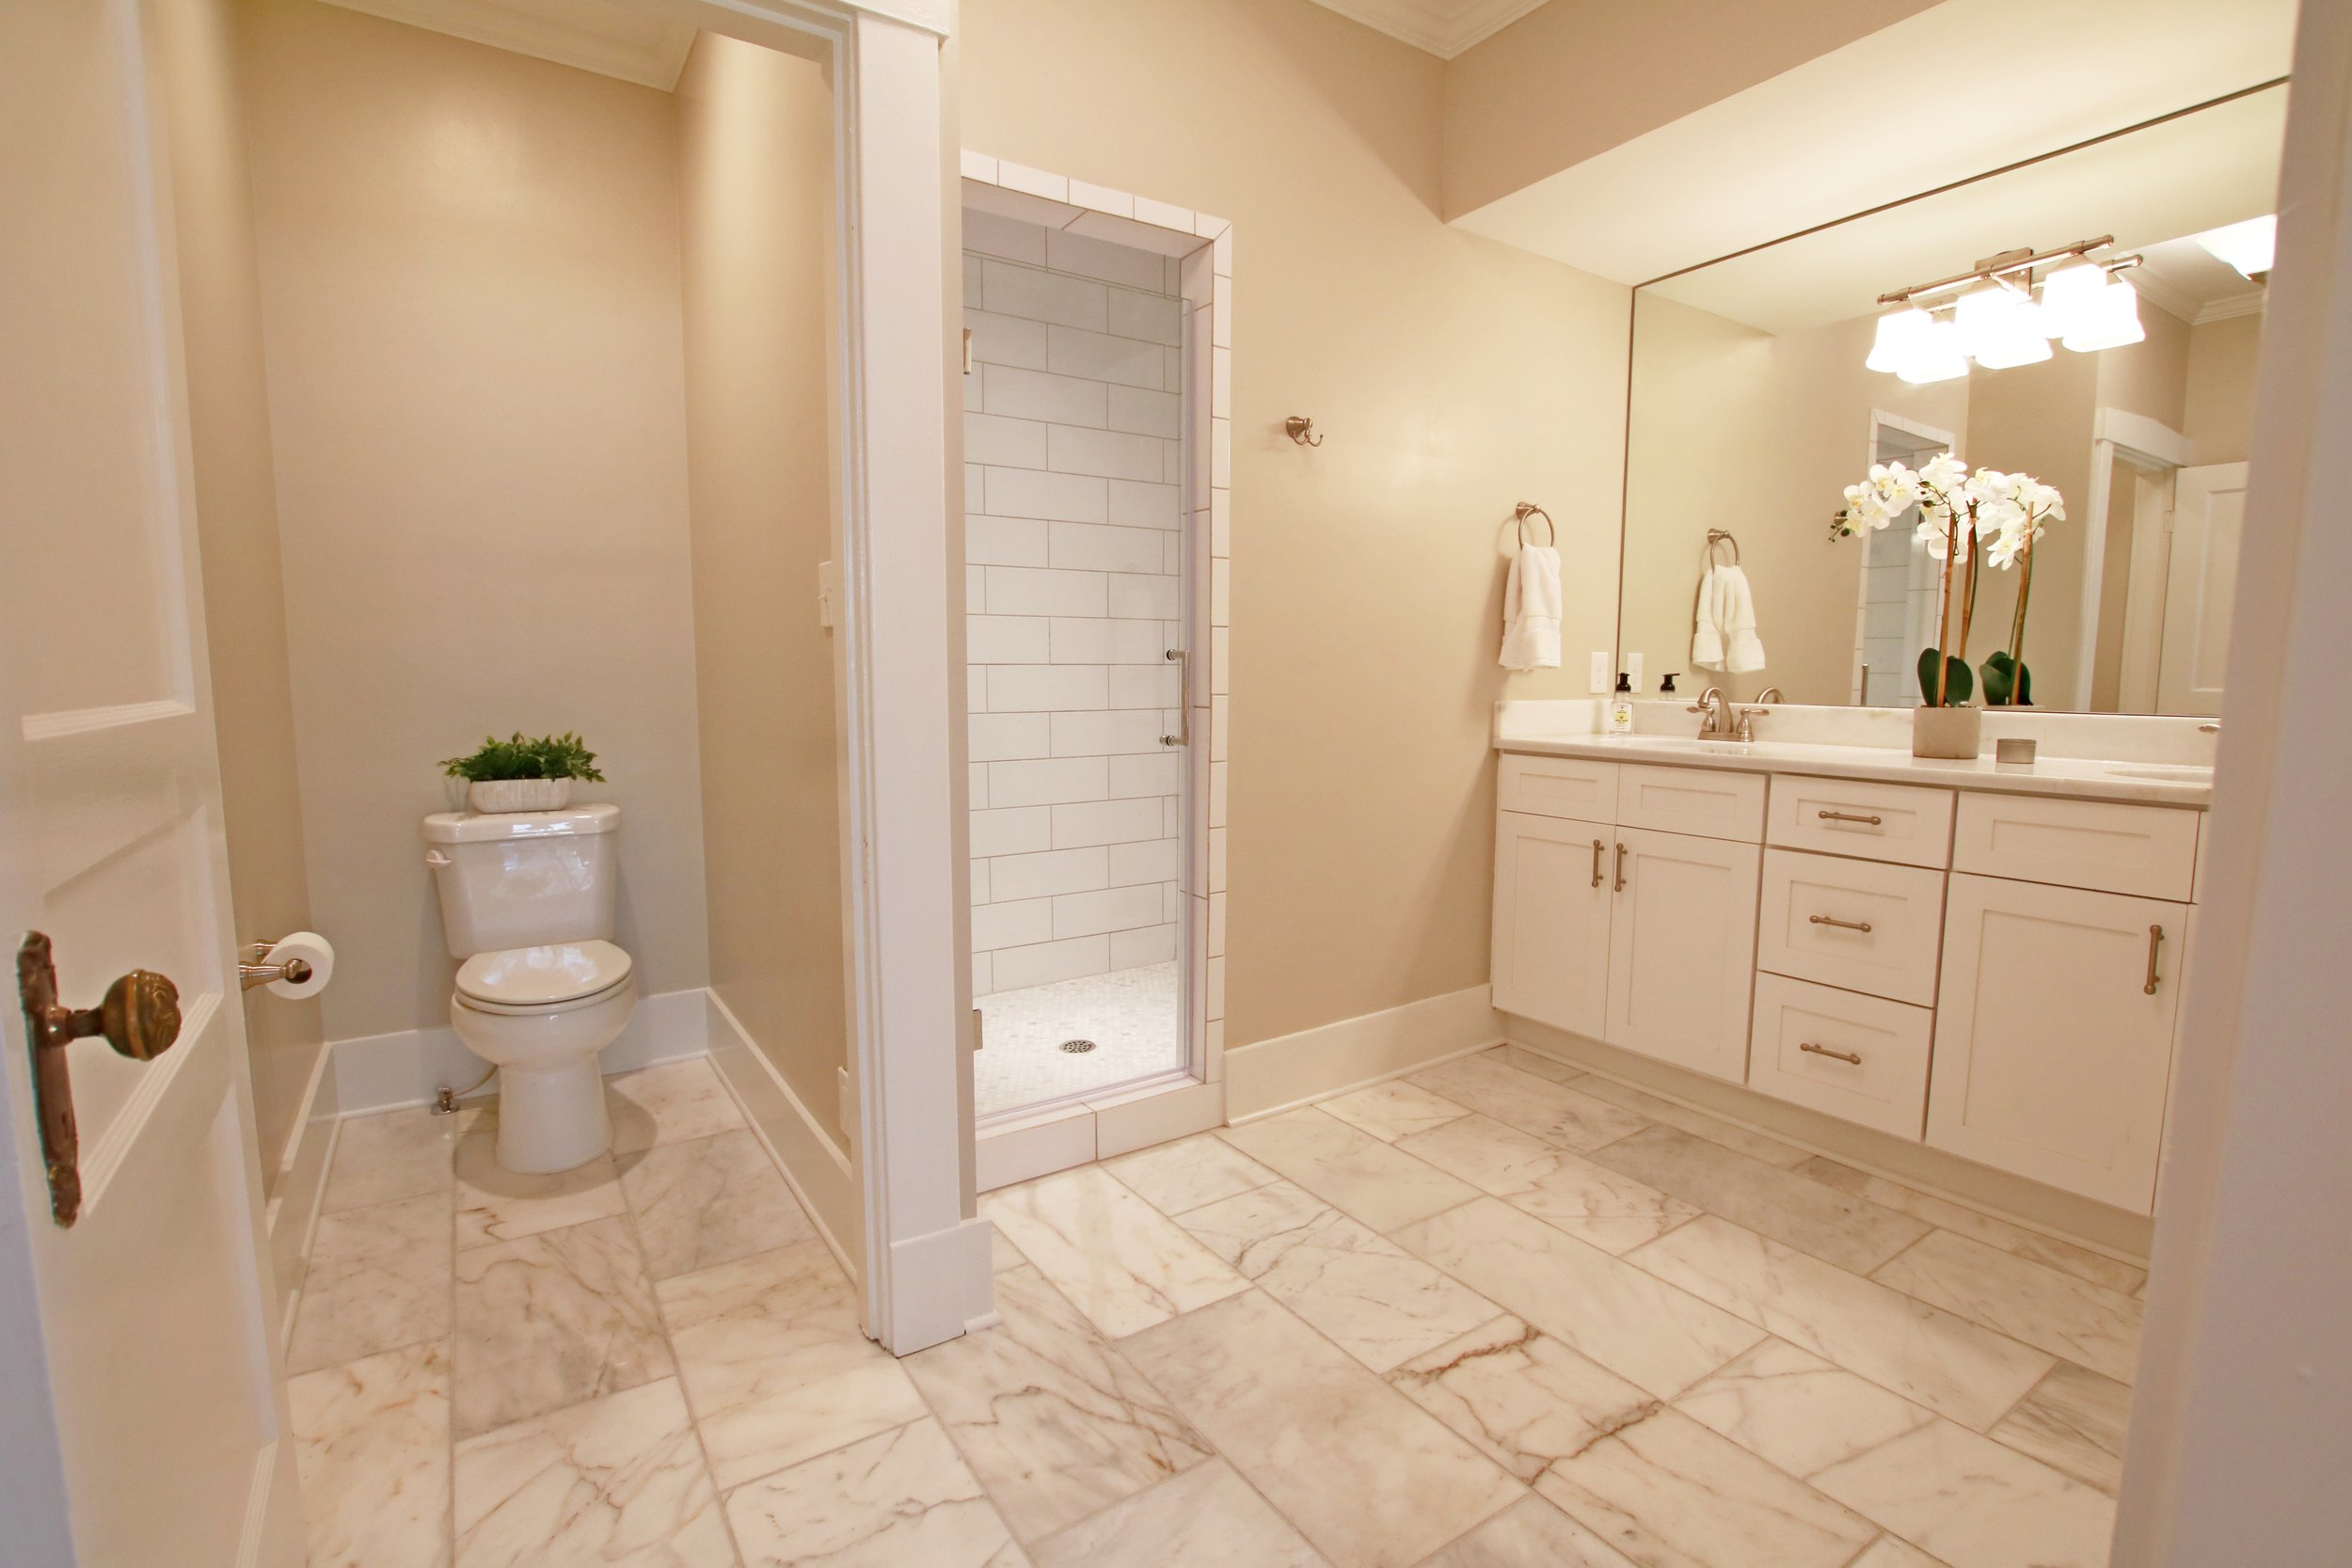 Prime Design Memphis, LLC - Master Bathroom, Carrara Marble Tile and Countertops, Subway Tile, White Shaker Double Vanity